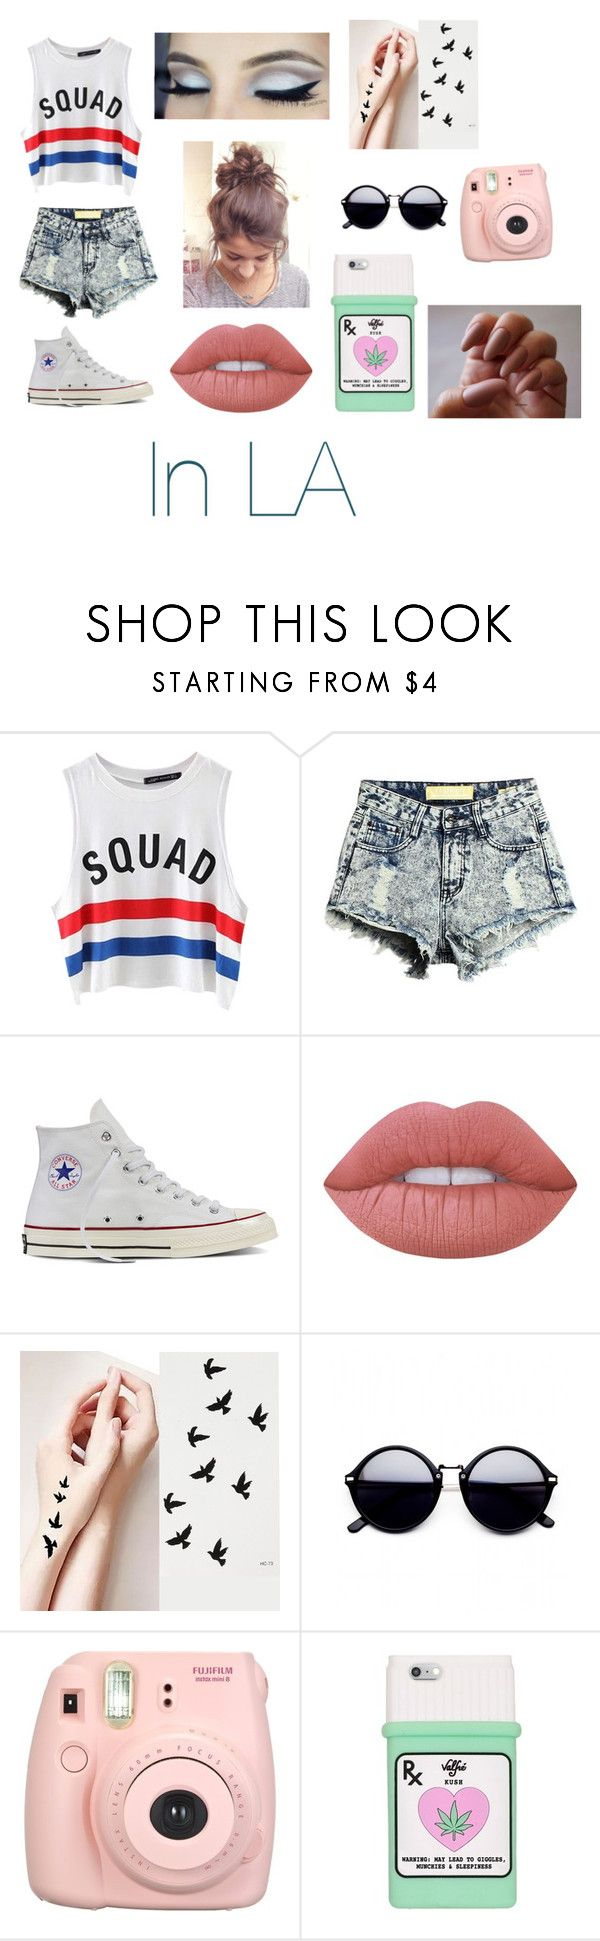 """LA outfit #1"" by rayneruscheinsky ❤ liked on Polyvore featuring Chicnova Fashion, Converse, Lime Crime, Fujifilm and Valfré"